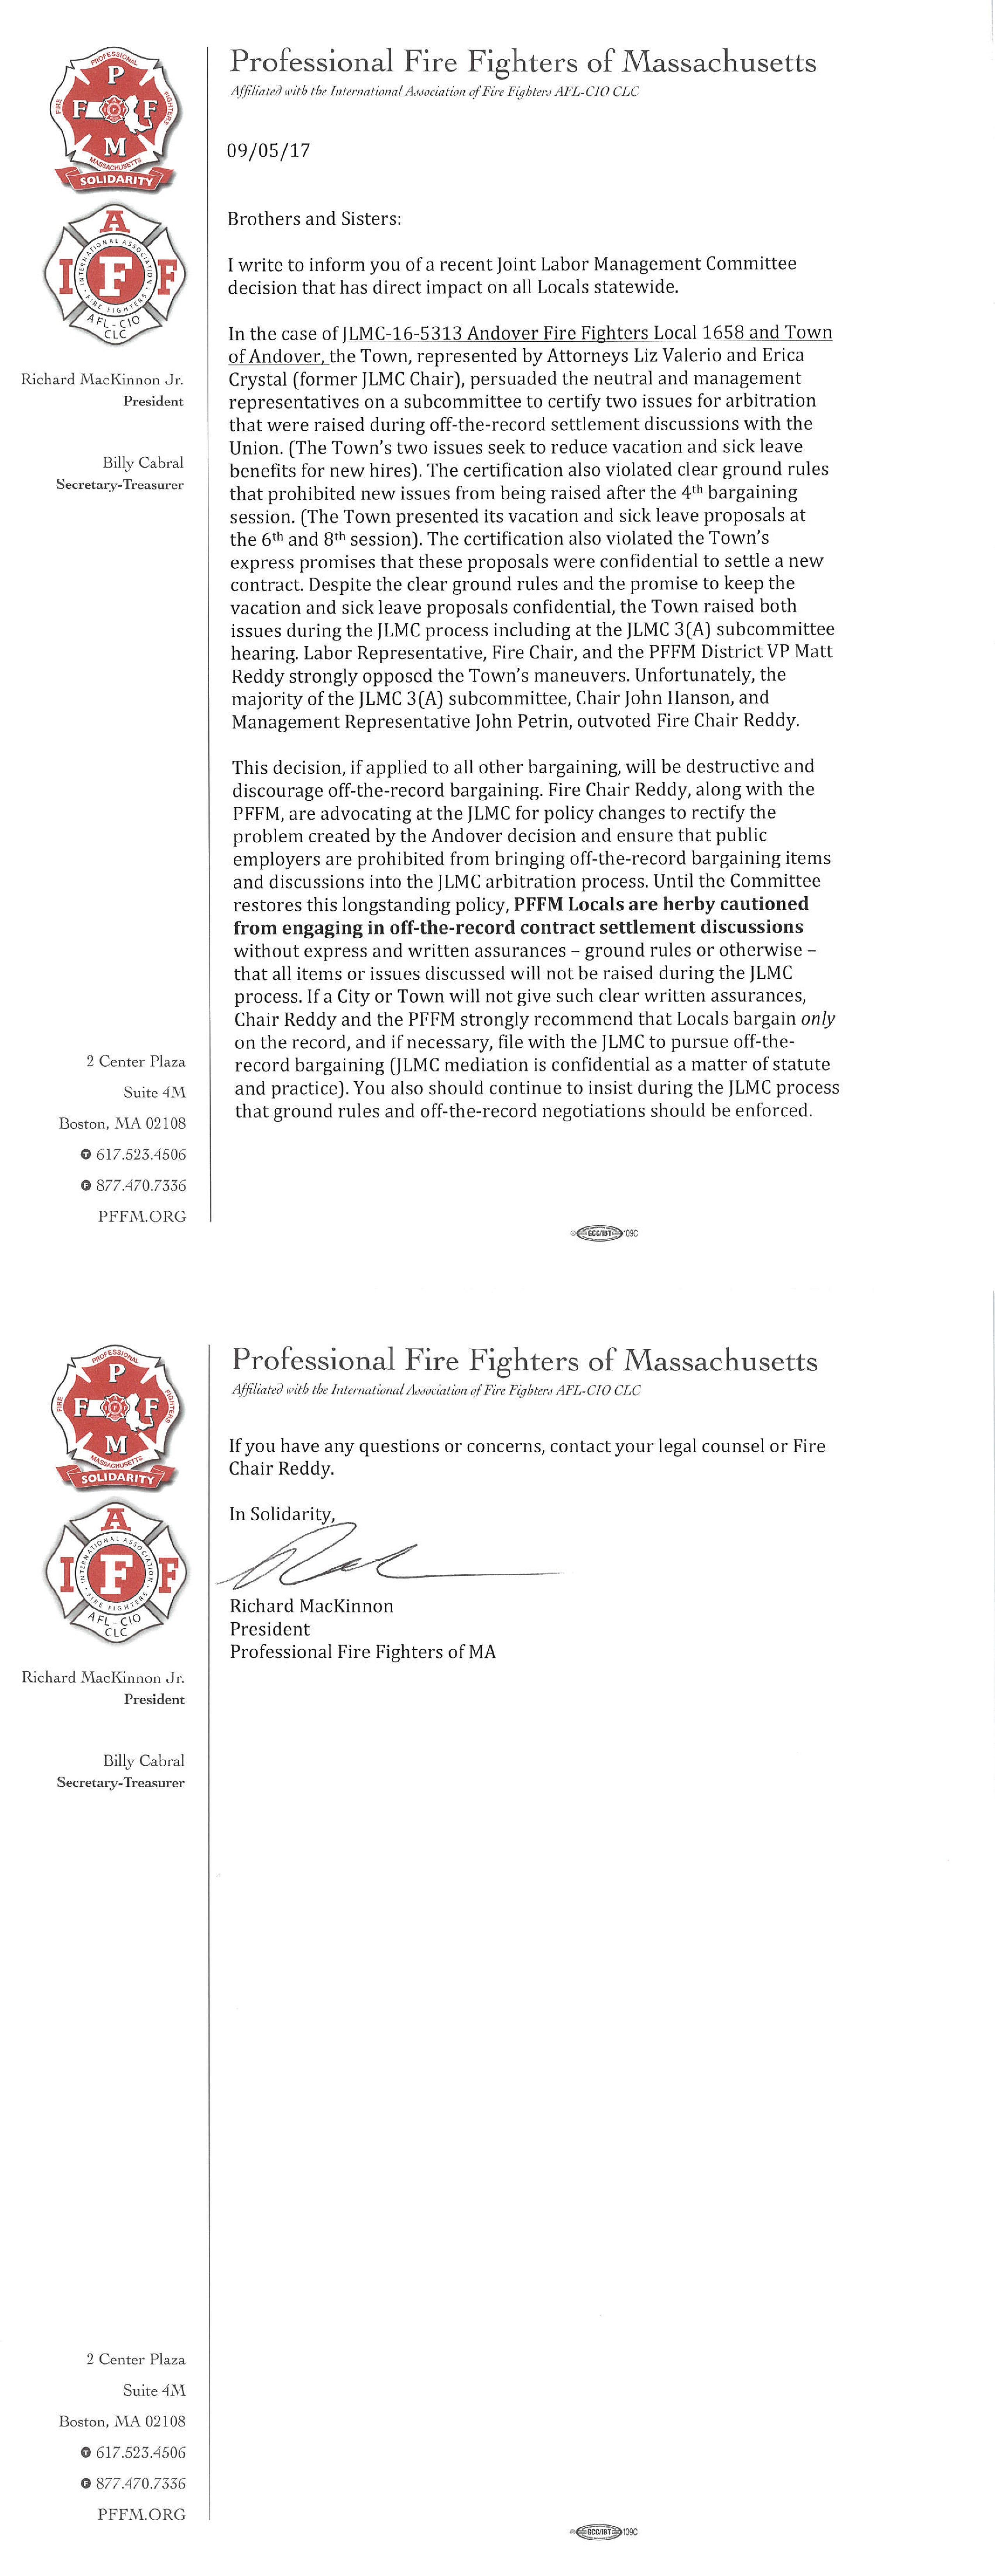 Professional Fire Fighters of Massachusetts PFFM – Fire Service Application Form